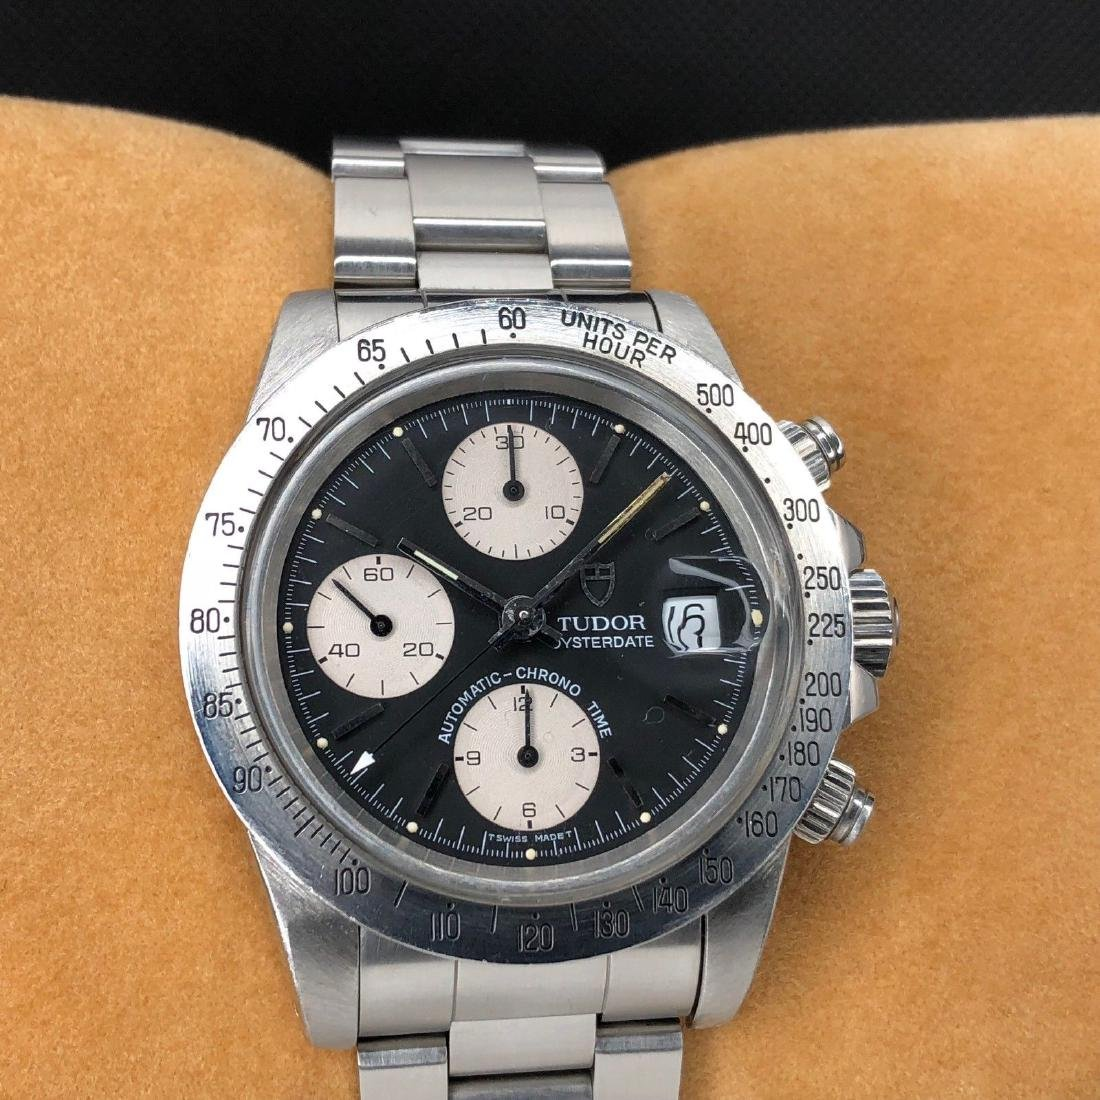 Tudor Big Block OysterDate Automatic Chronograph